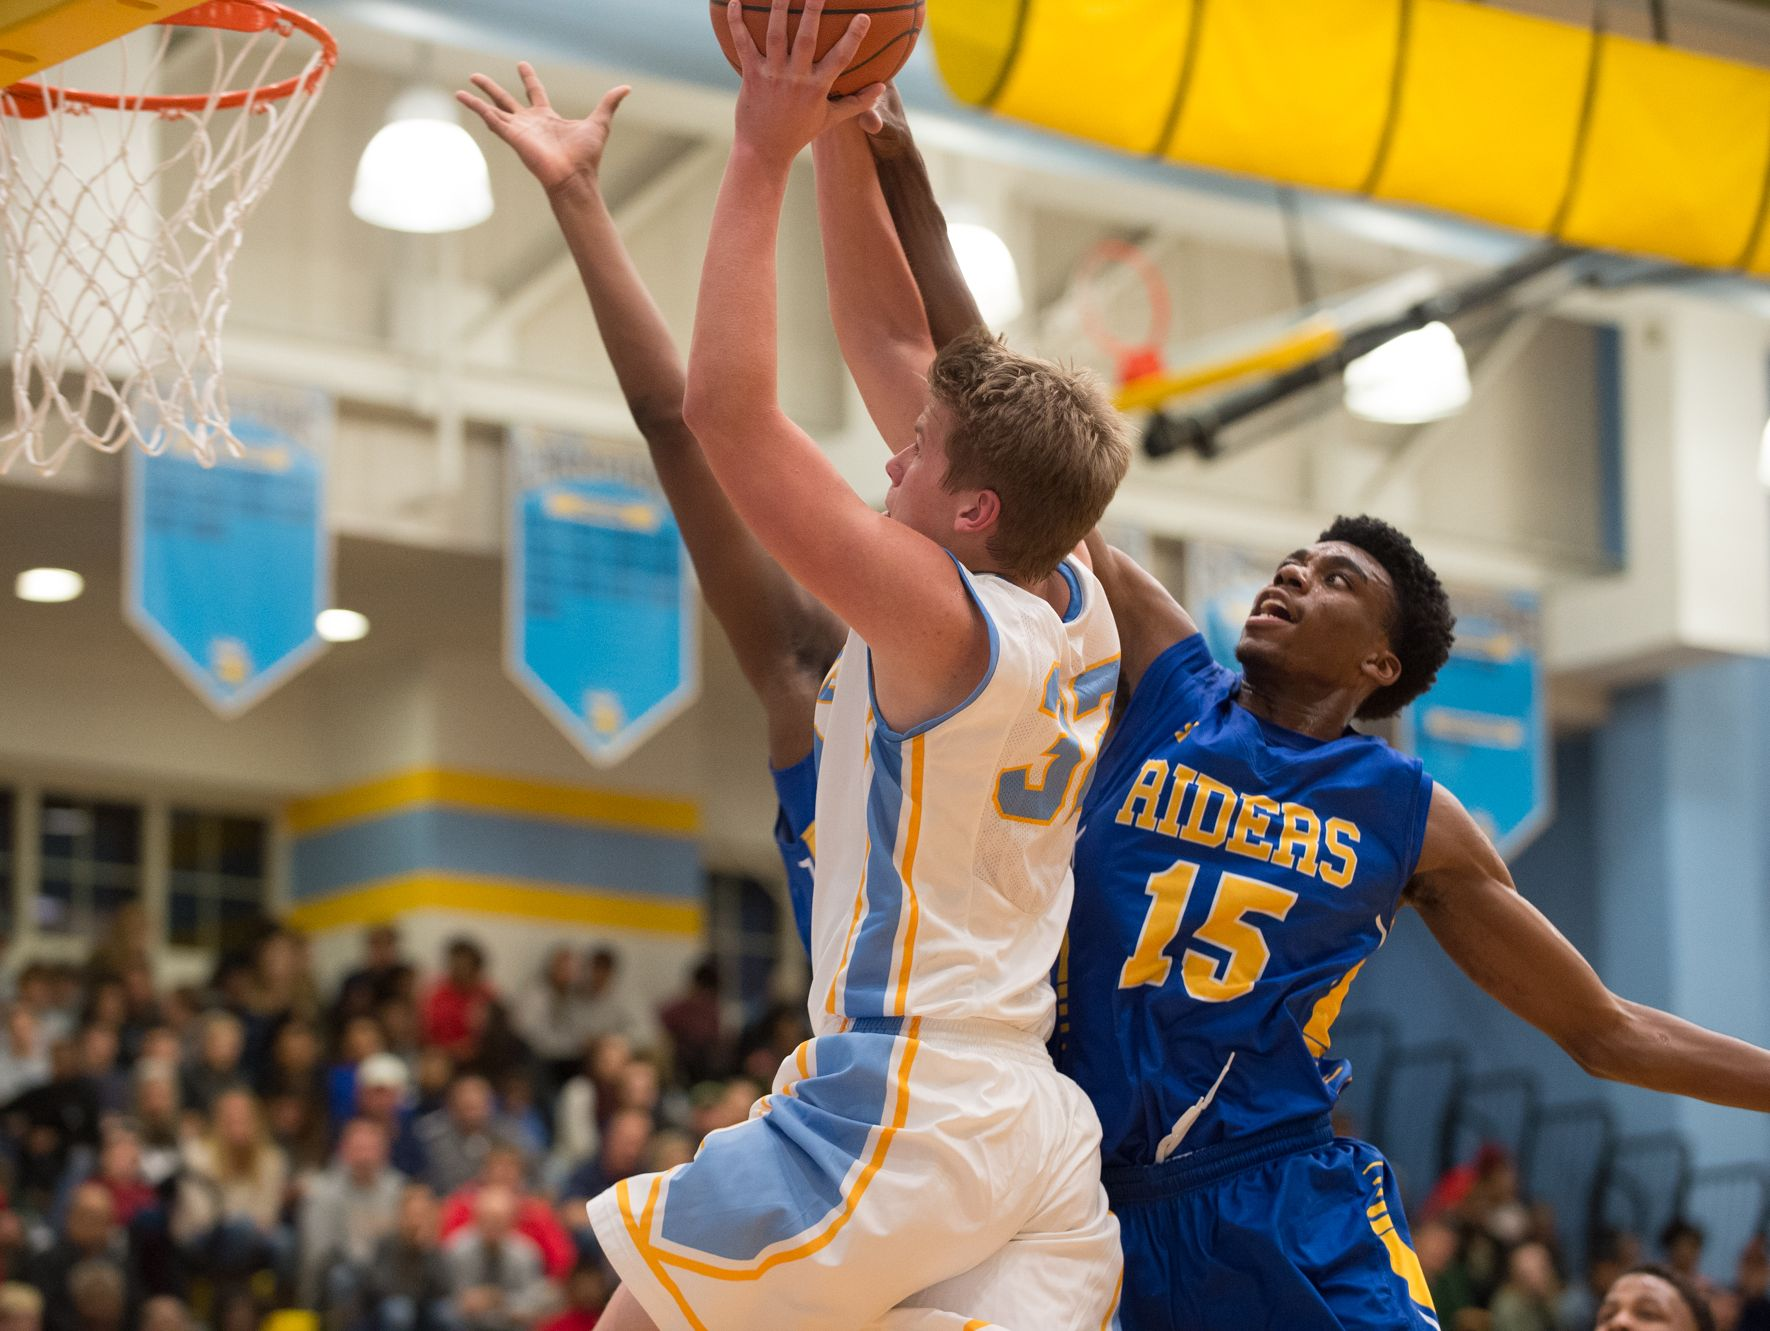 Cape Henlopen's Ian Robertson (32), left, goes up for a basket as Caesar Rodney's Shaft Clark (15) defends during their game at Cape Henlopen High School.